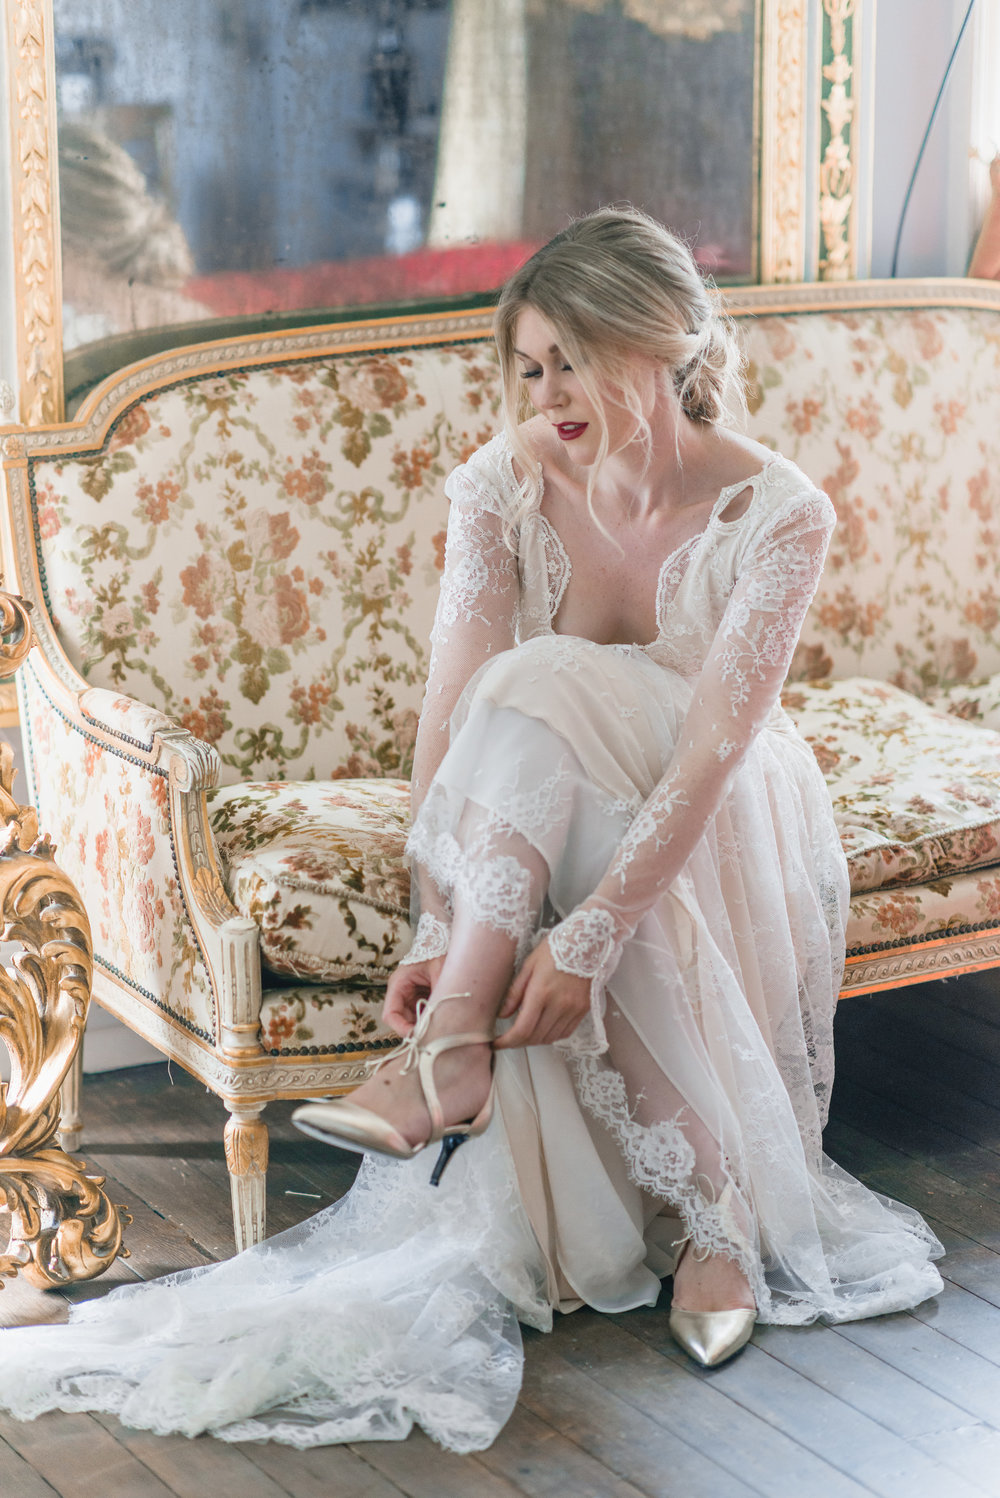 The Timeless Stylist-Elegant and Romantic Wedding Styling-Wedding Morning Prep.jpg